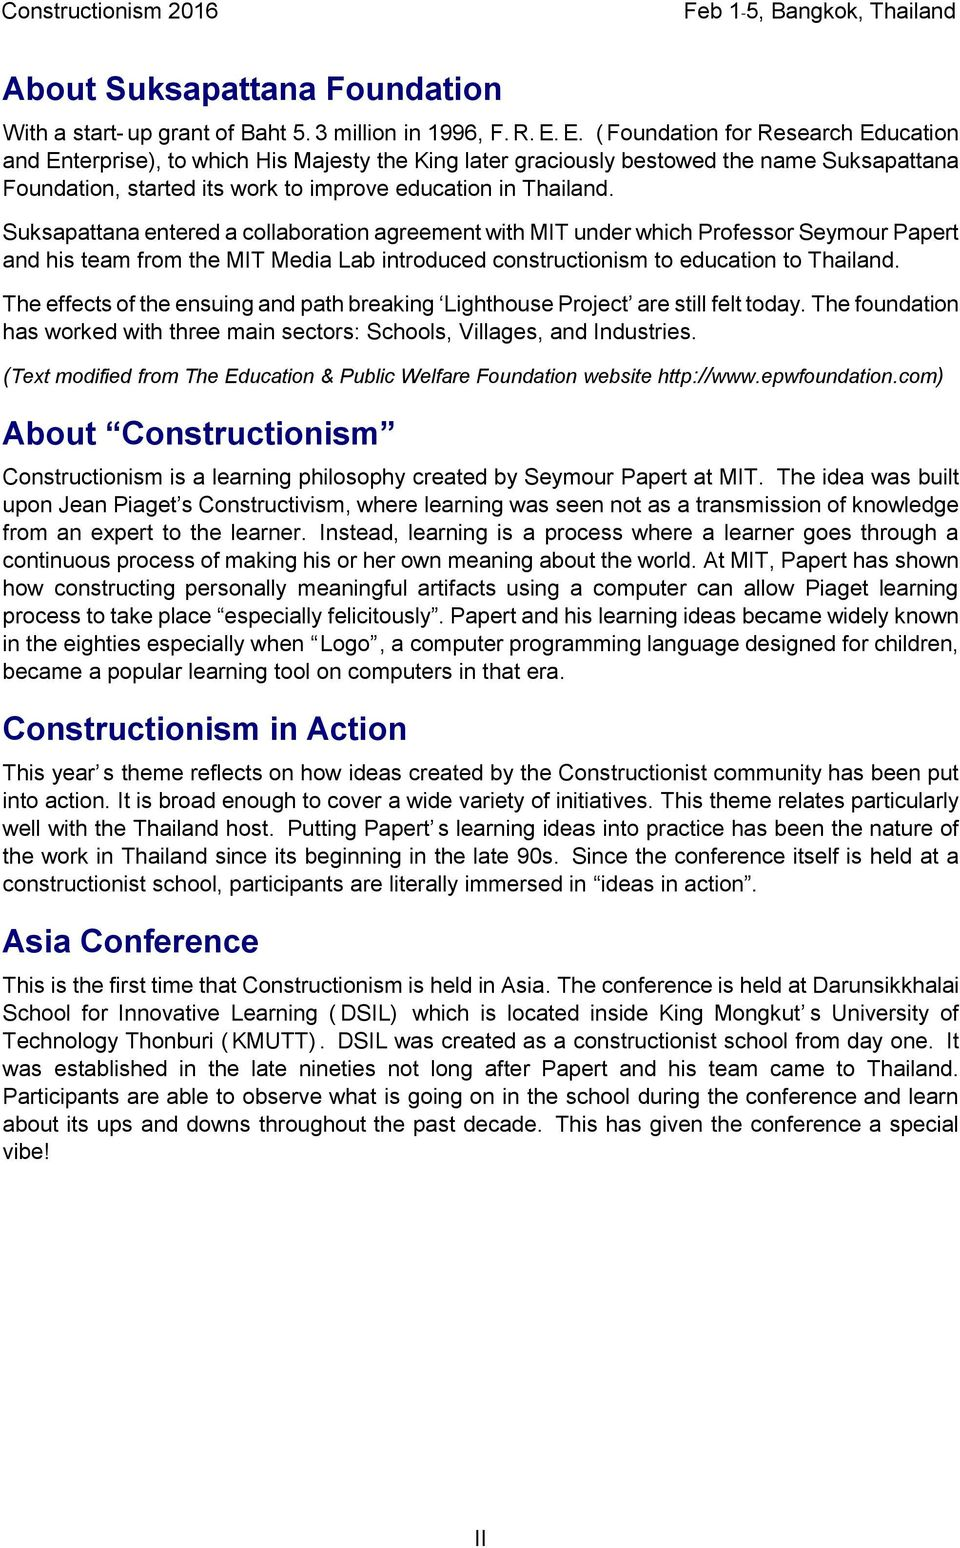 Constructionism Conference Proceedings Dra Papers Panels Four Kids39 Websites About Electricity For Practice And Fun Suksapattana Entered A Collaboration Agreement With Mit Under Which Professor Seymour Papert His Team From